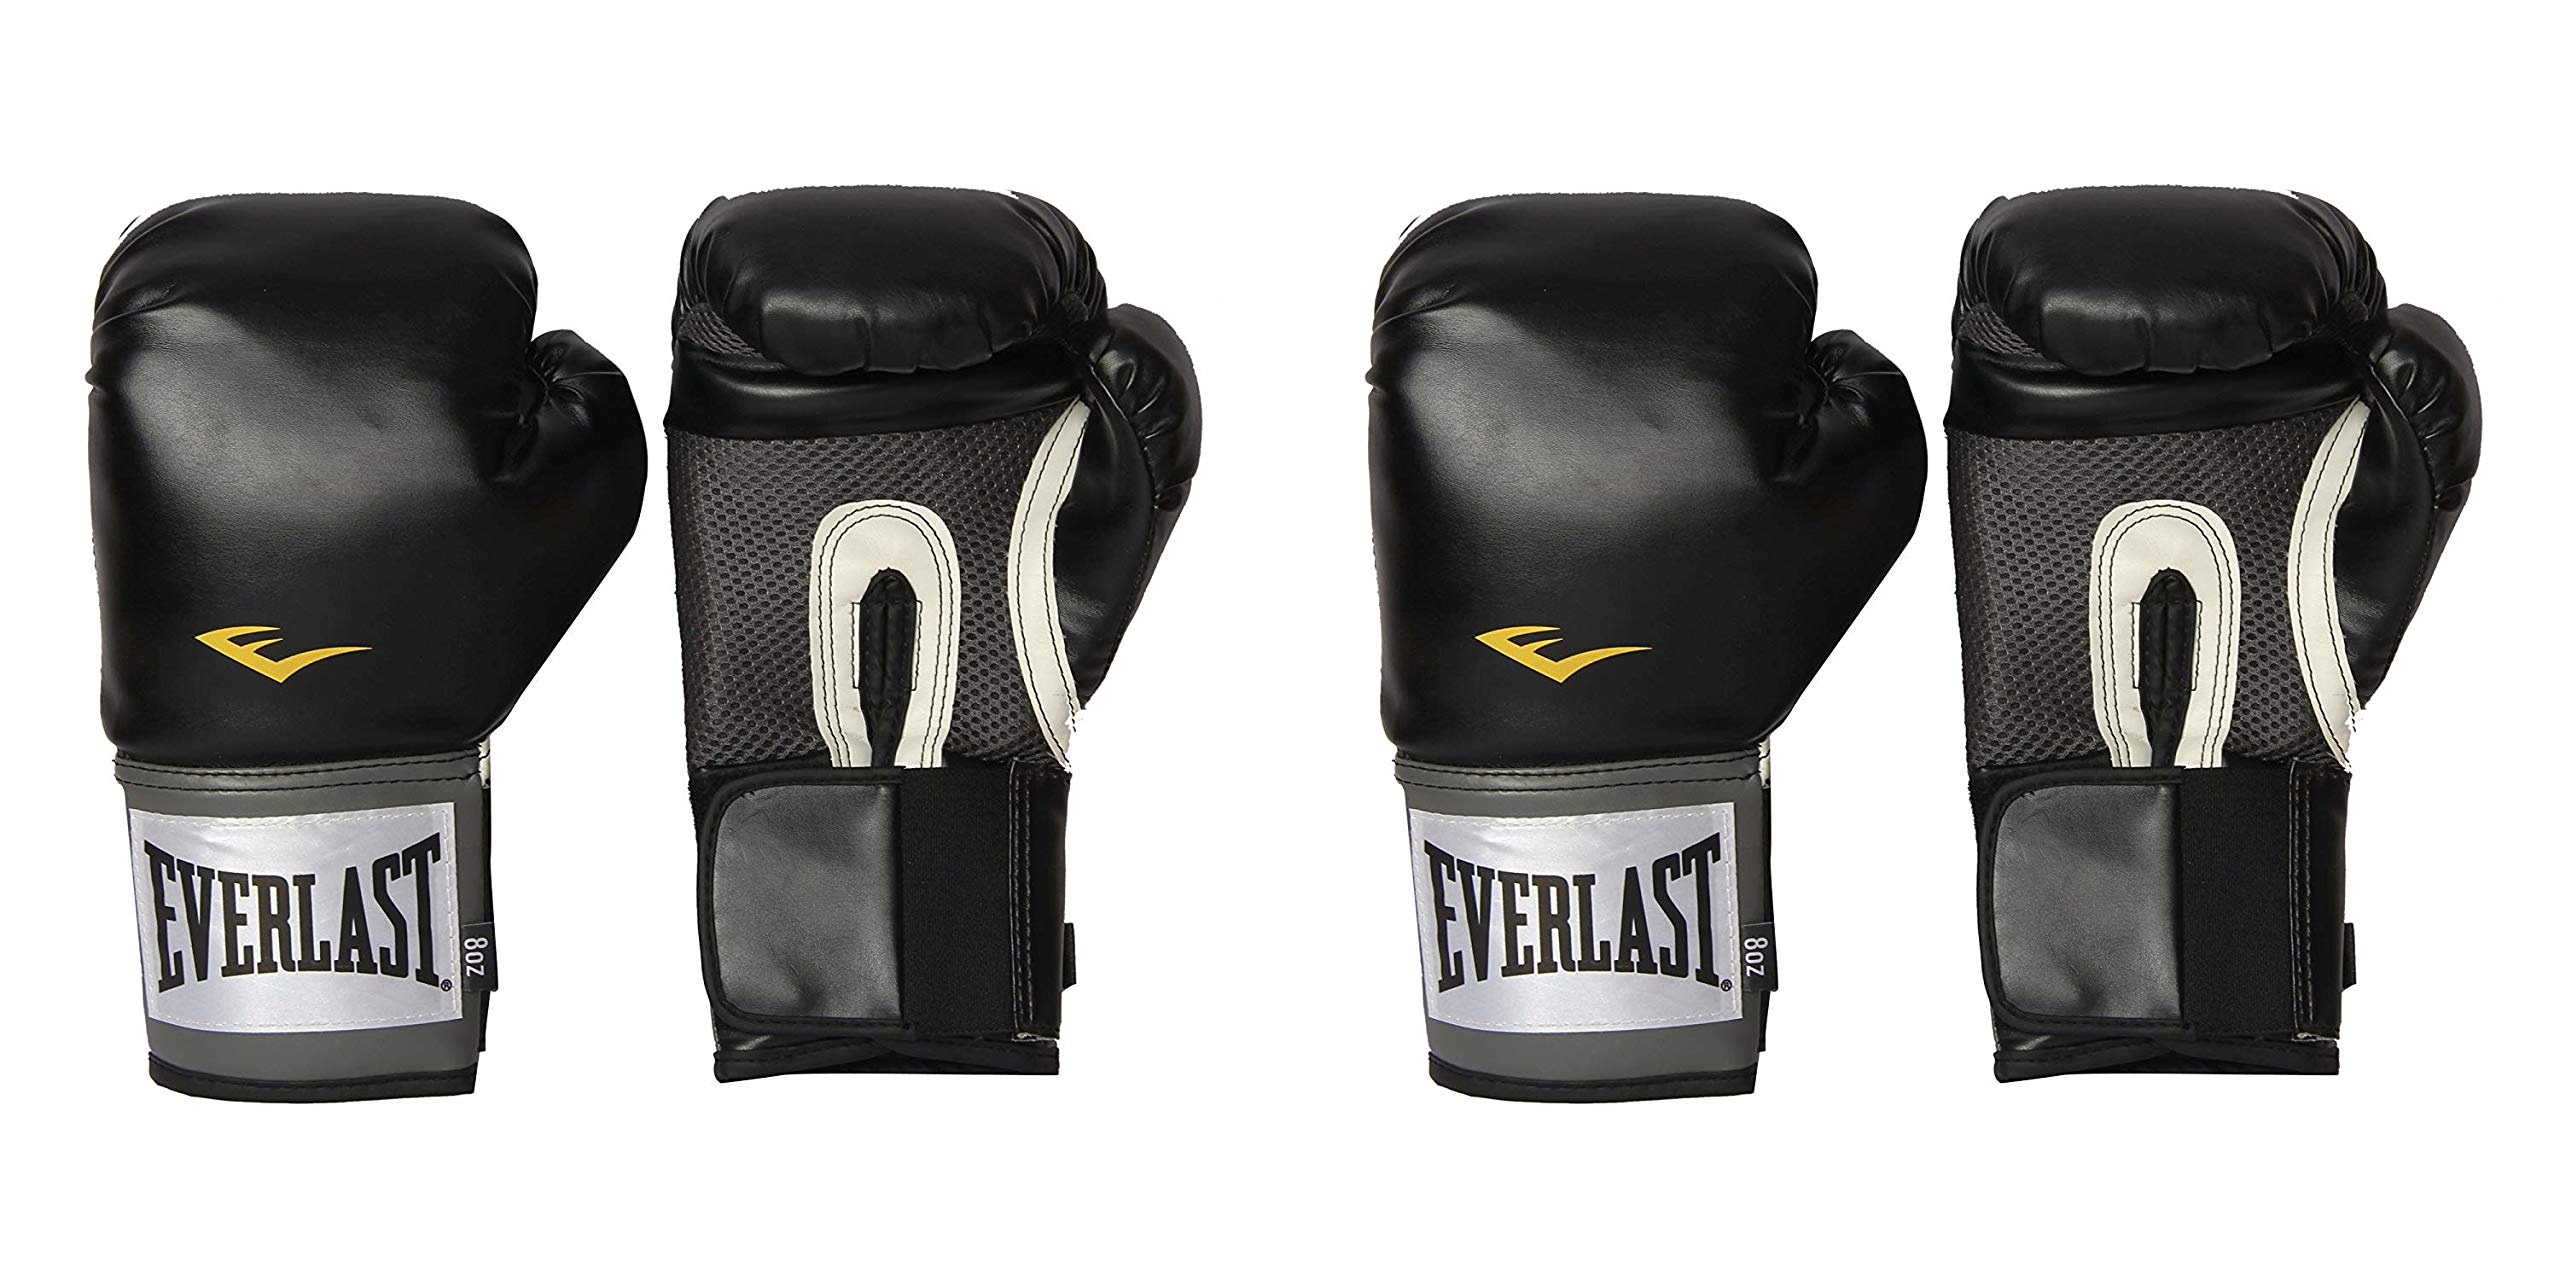 Everlast Pro Style Training Gloves, 2 Pack